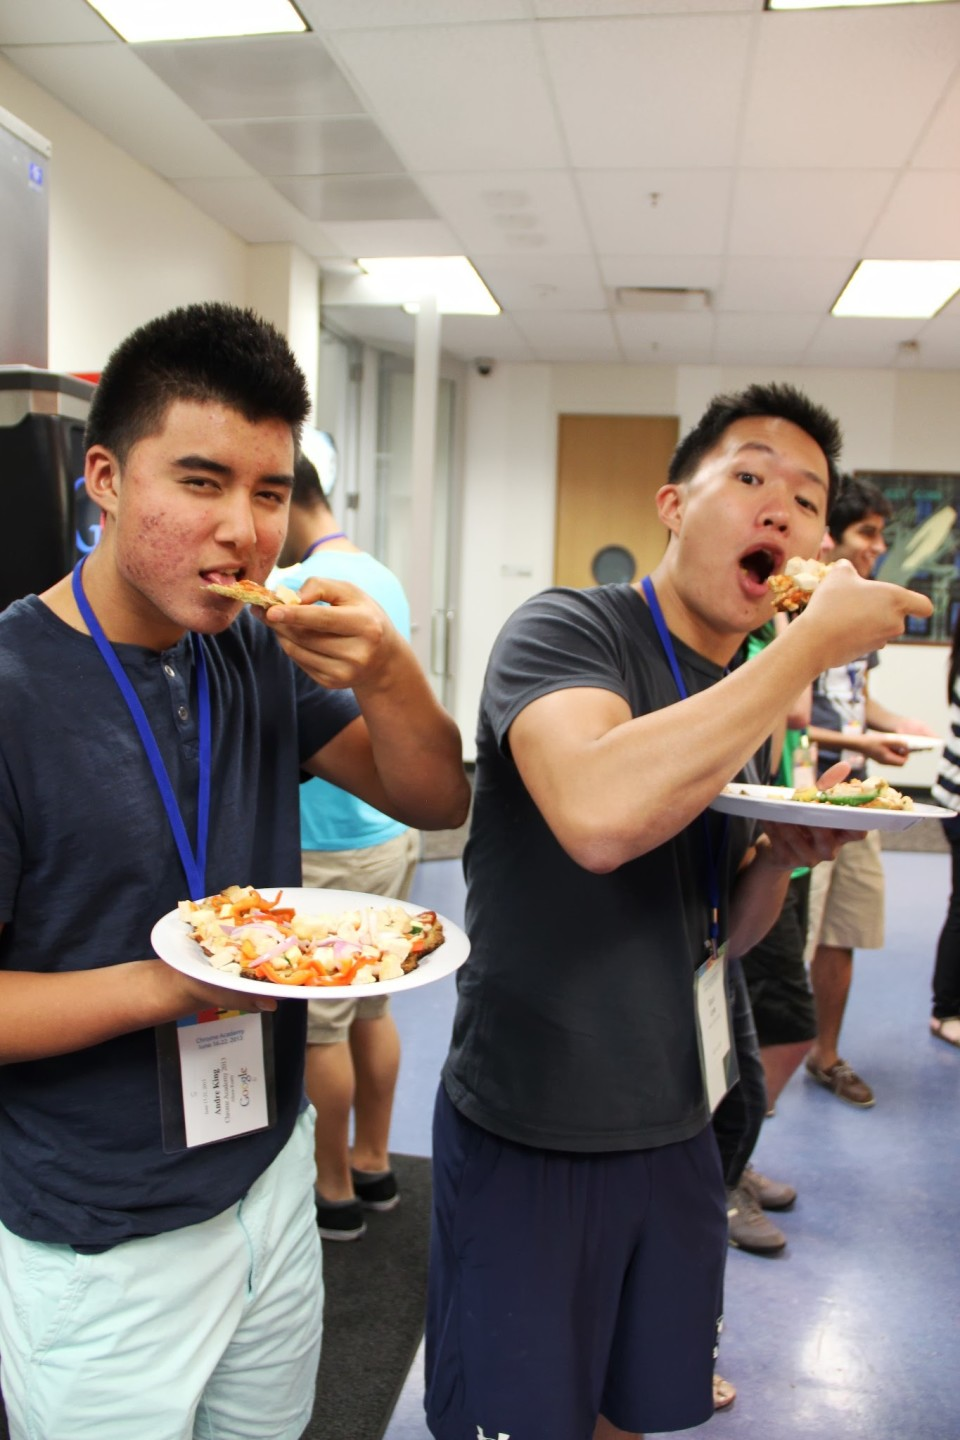 Me and Andre (half-Korean!) pretending to eat raw pizza. Andre's awesome cause he also likes to eat healthy and lifting.